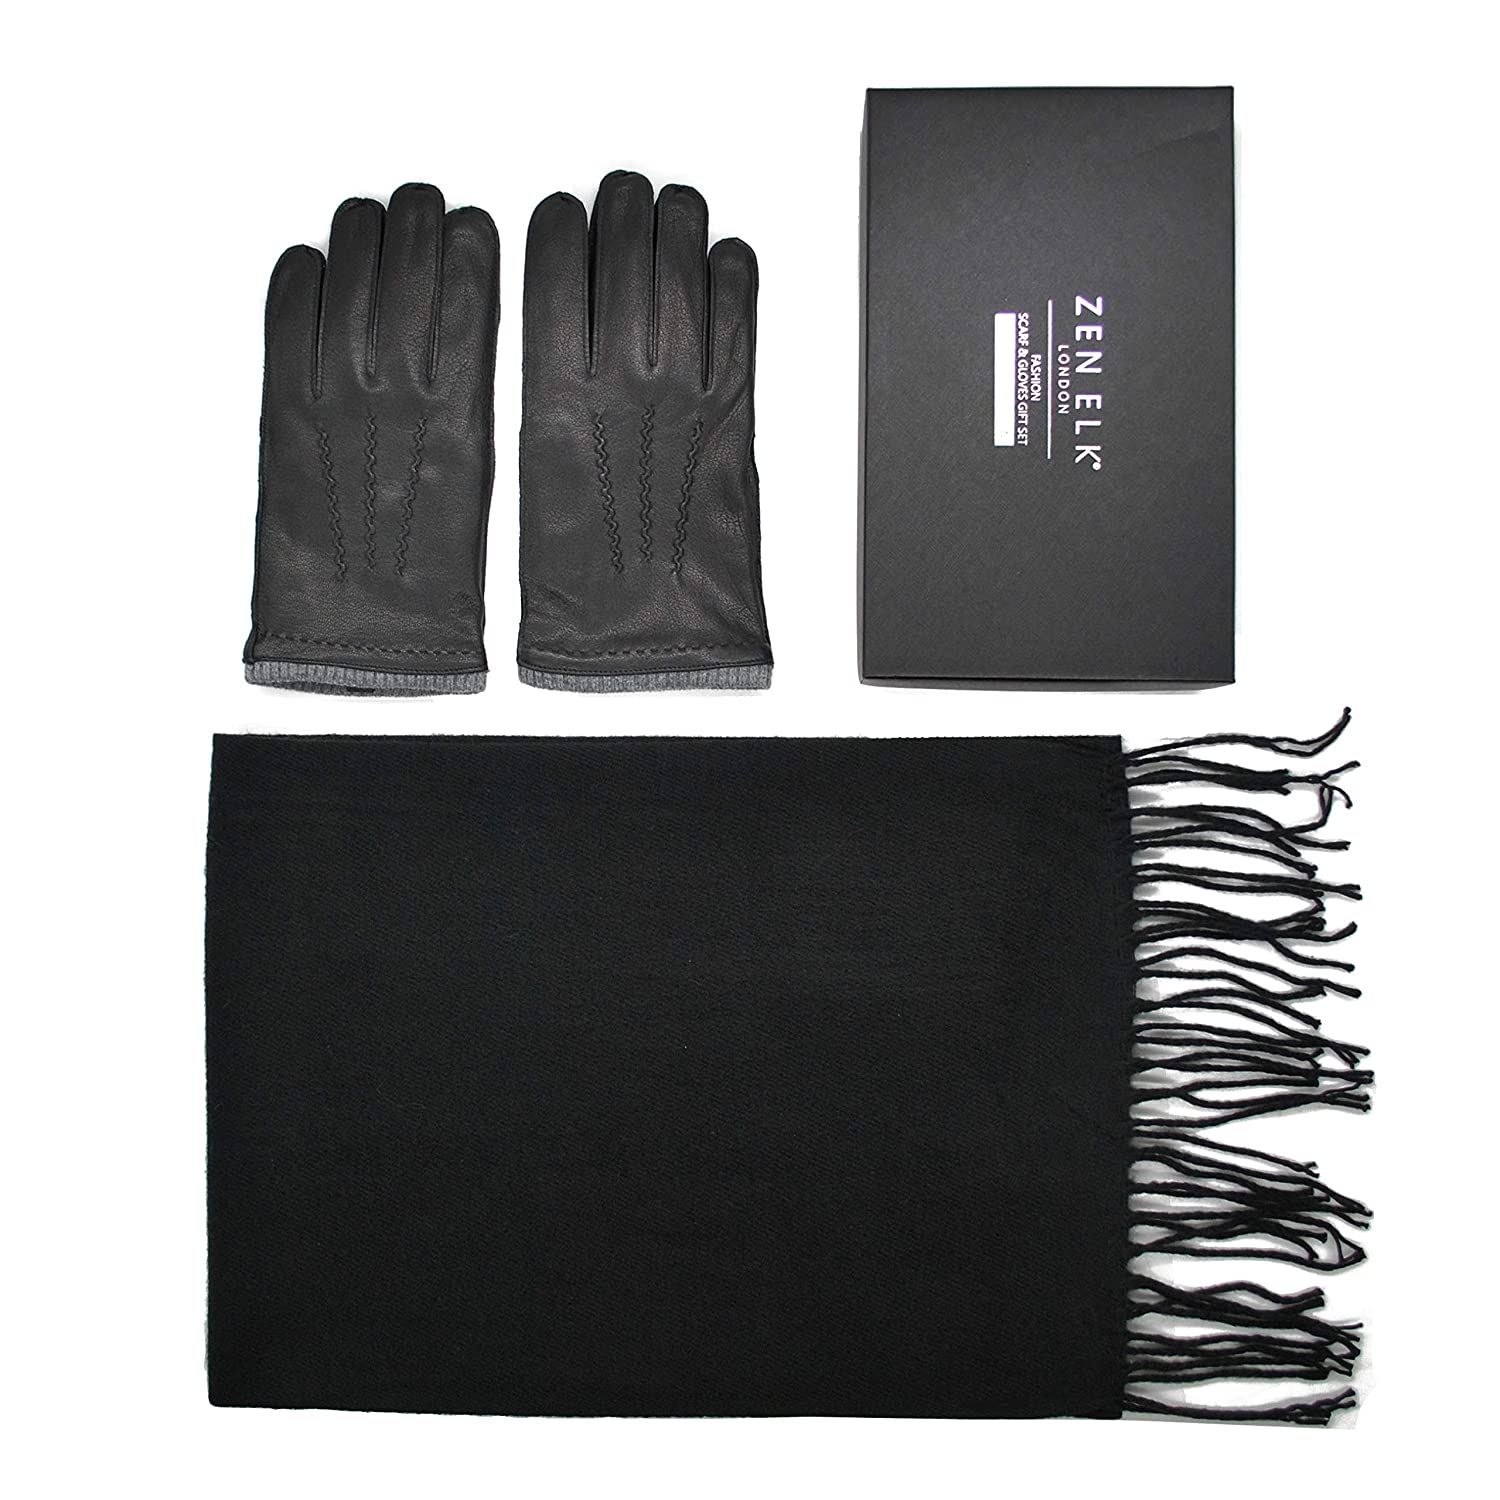 Men's Outseam Leather Gloves and Twill Pattern Scarf Box Set #20 (Large)